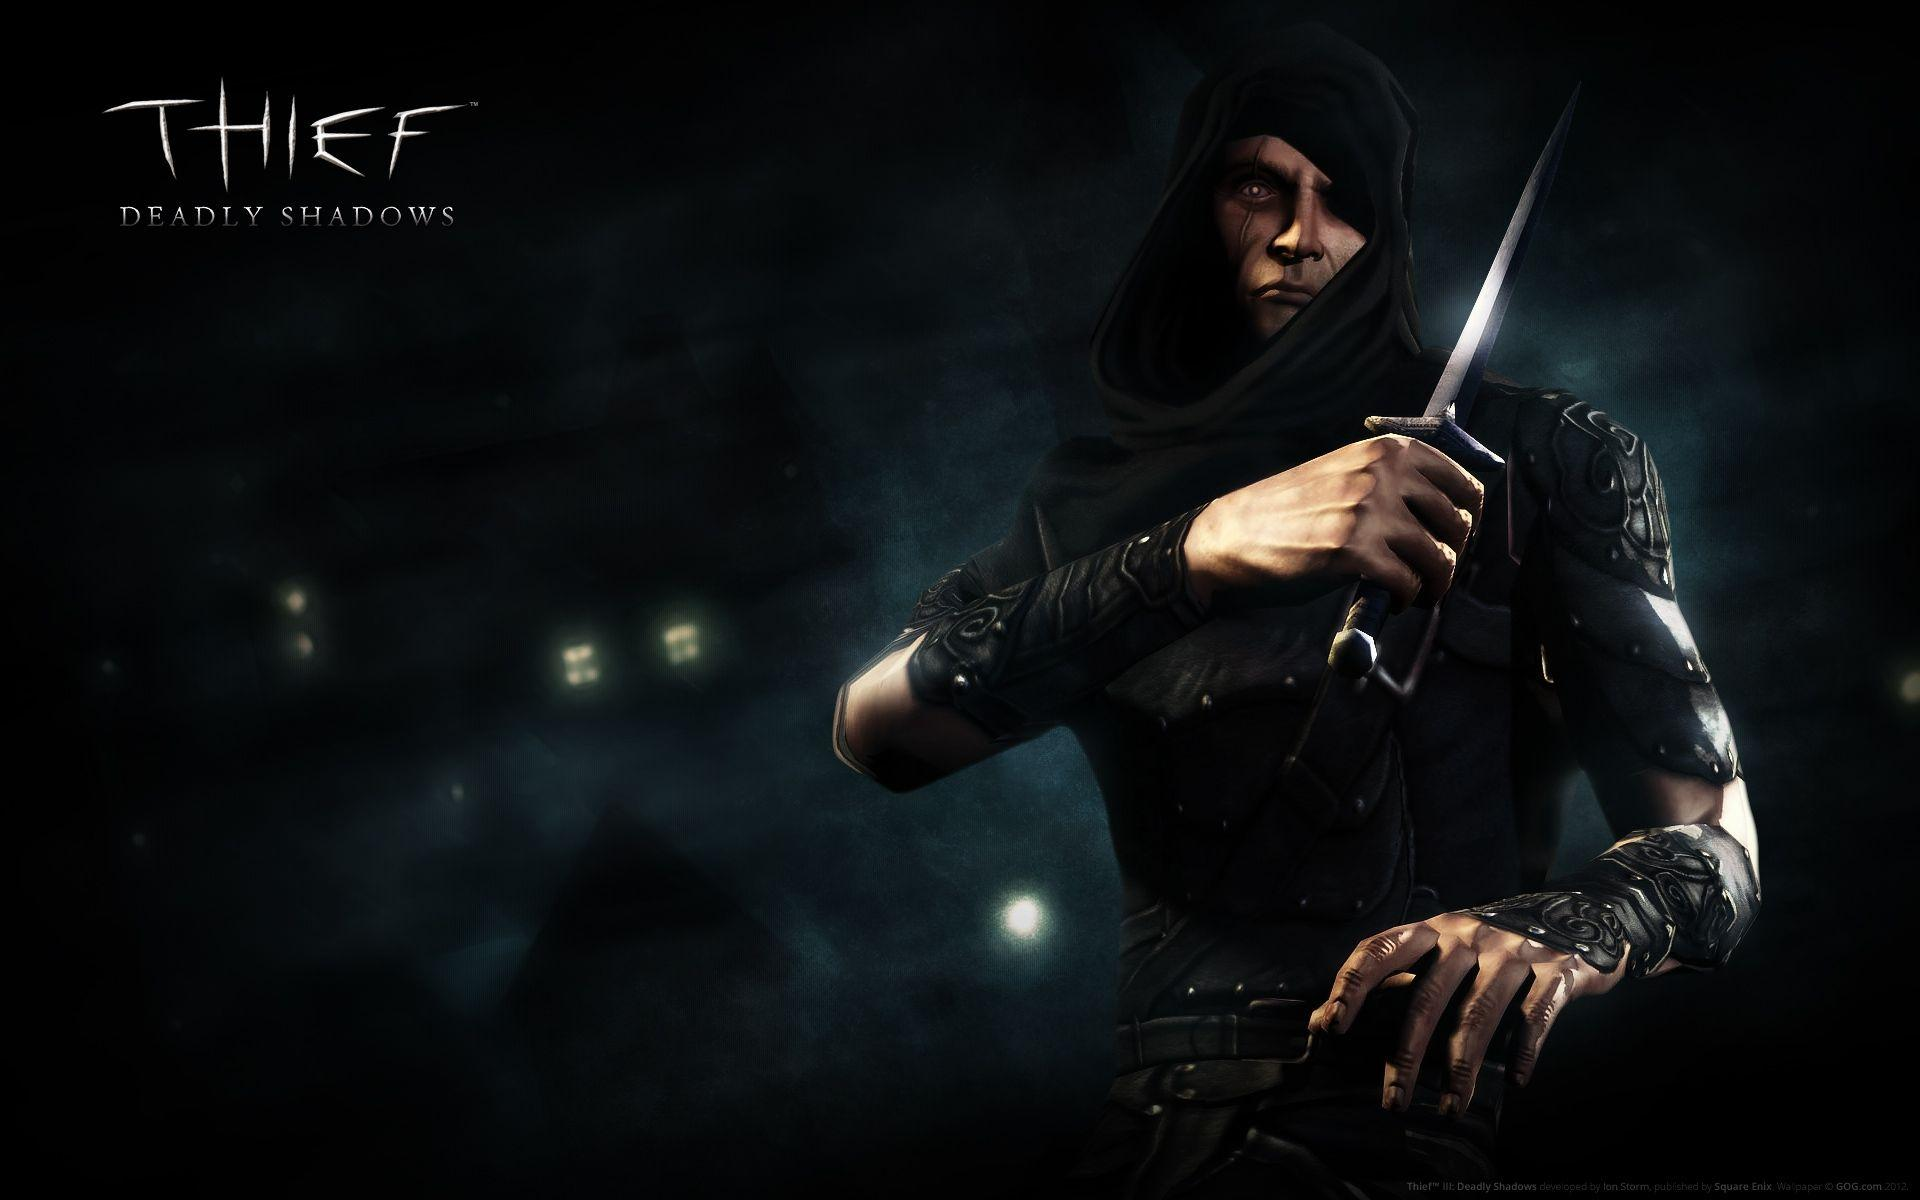 3 Thief: Deadly Shadows HD Wallpapers